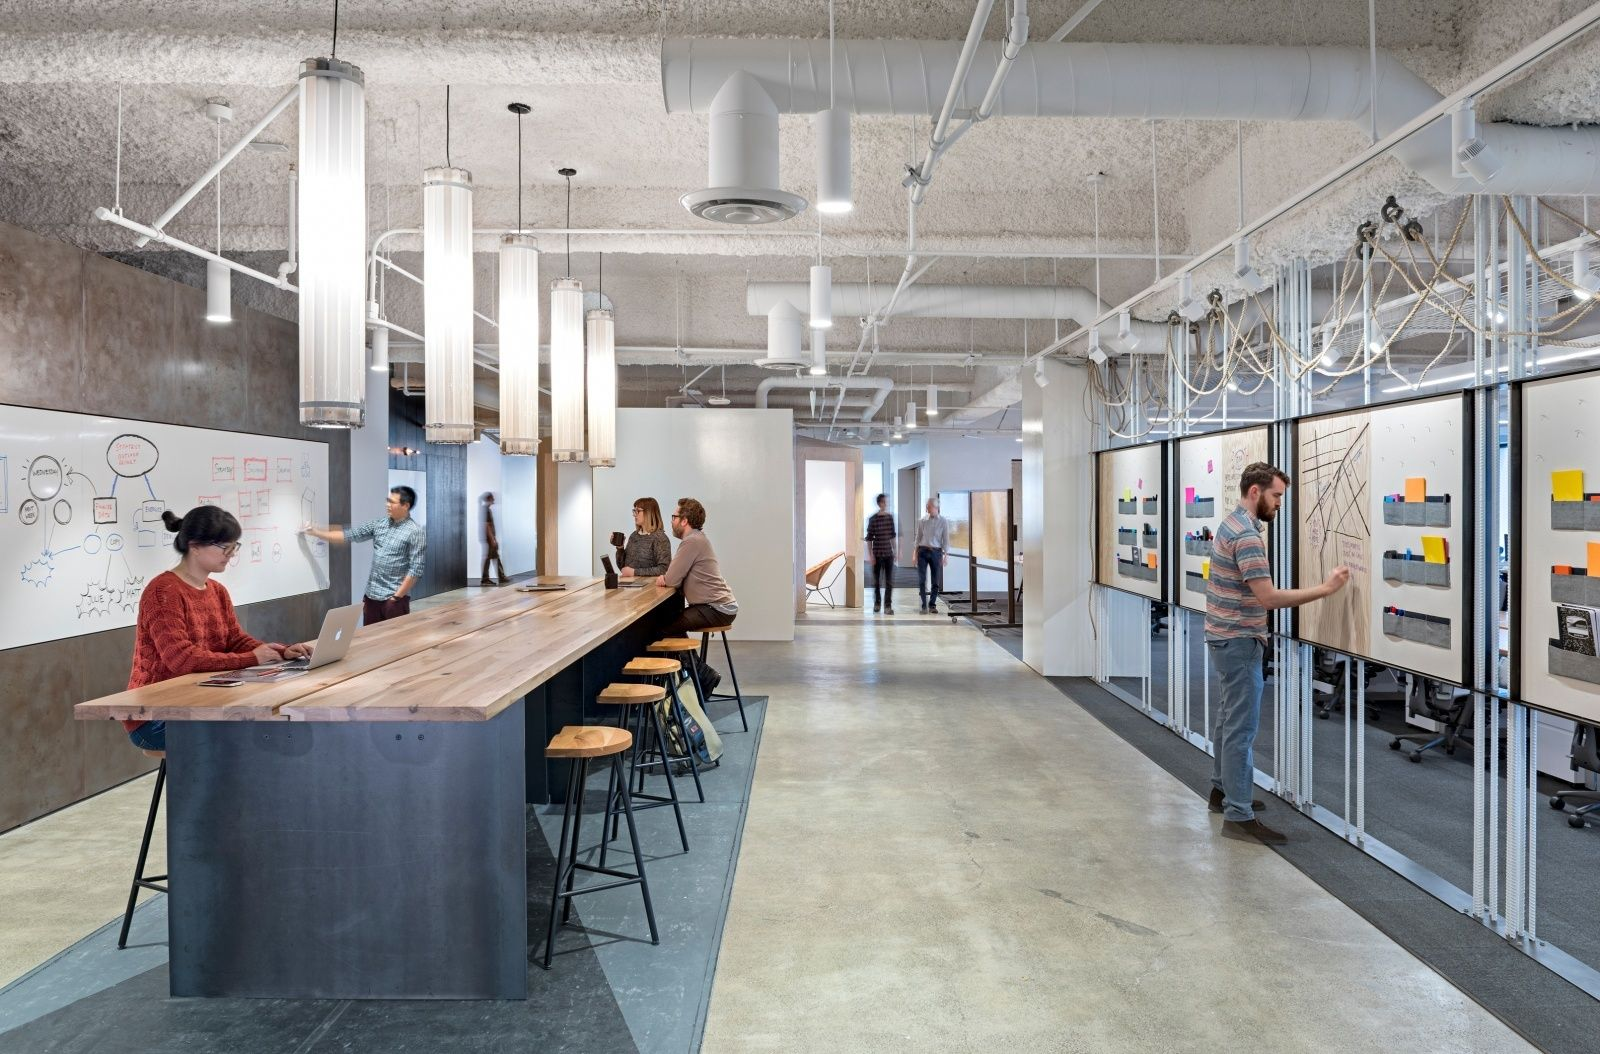 A tour of uber s new san francisco office startup